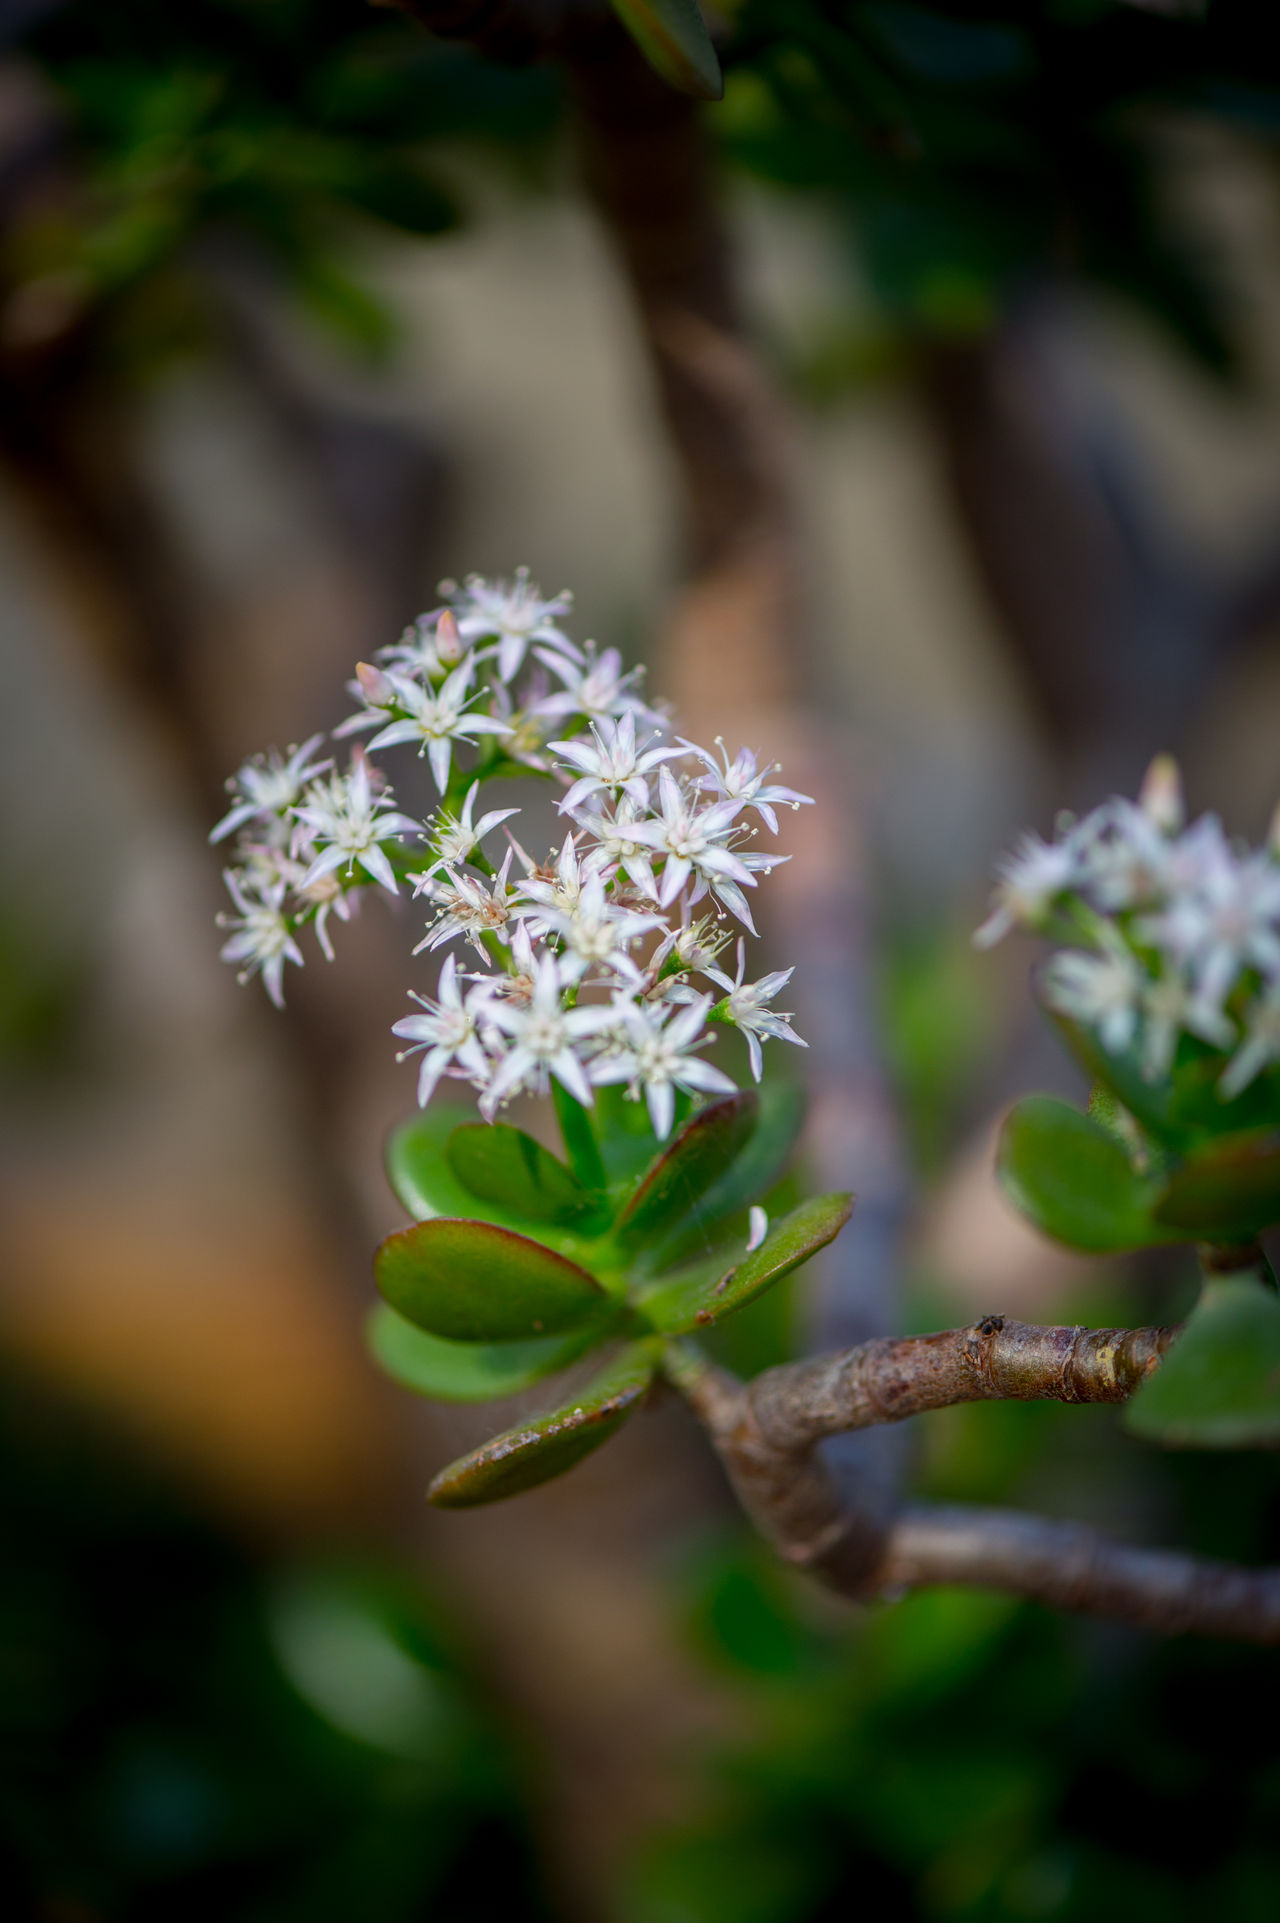 ©Amy Boyle Photography Beauty In Nature Close-up Day Flower Freshness Green Color Growth Leaf Nature No People Outdoors Plant